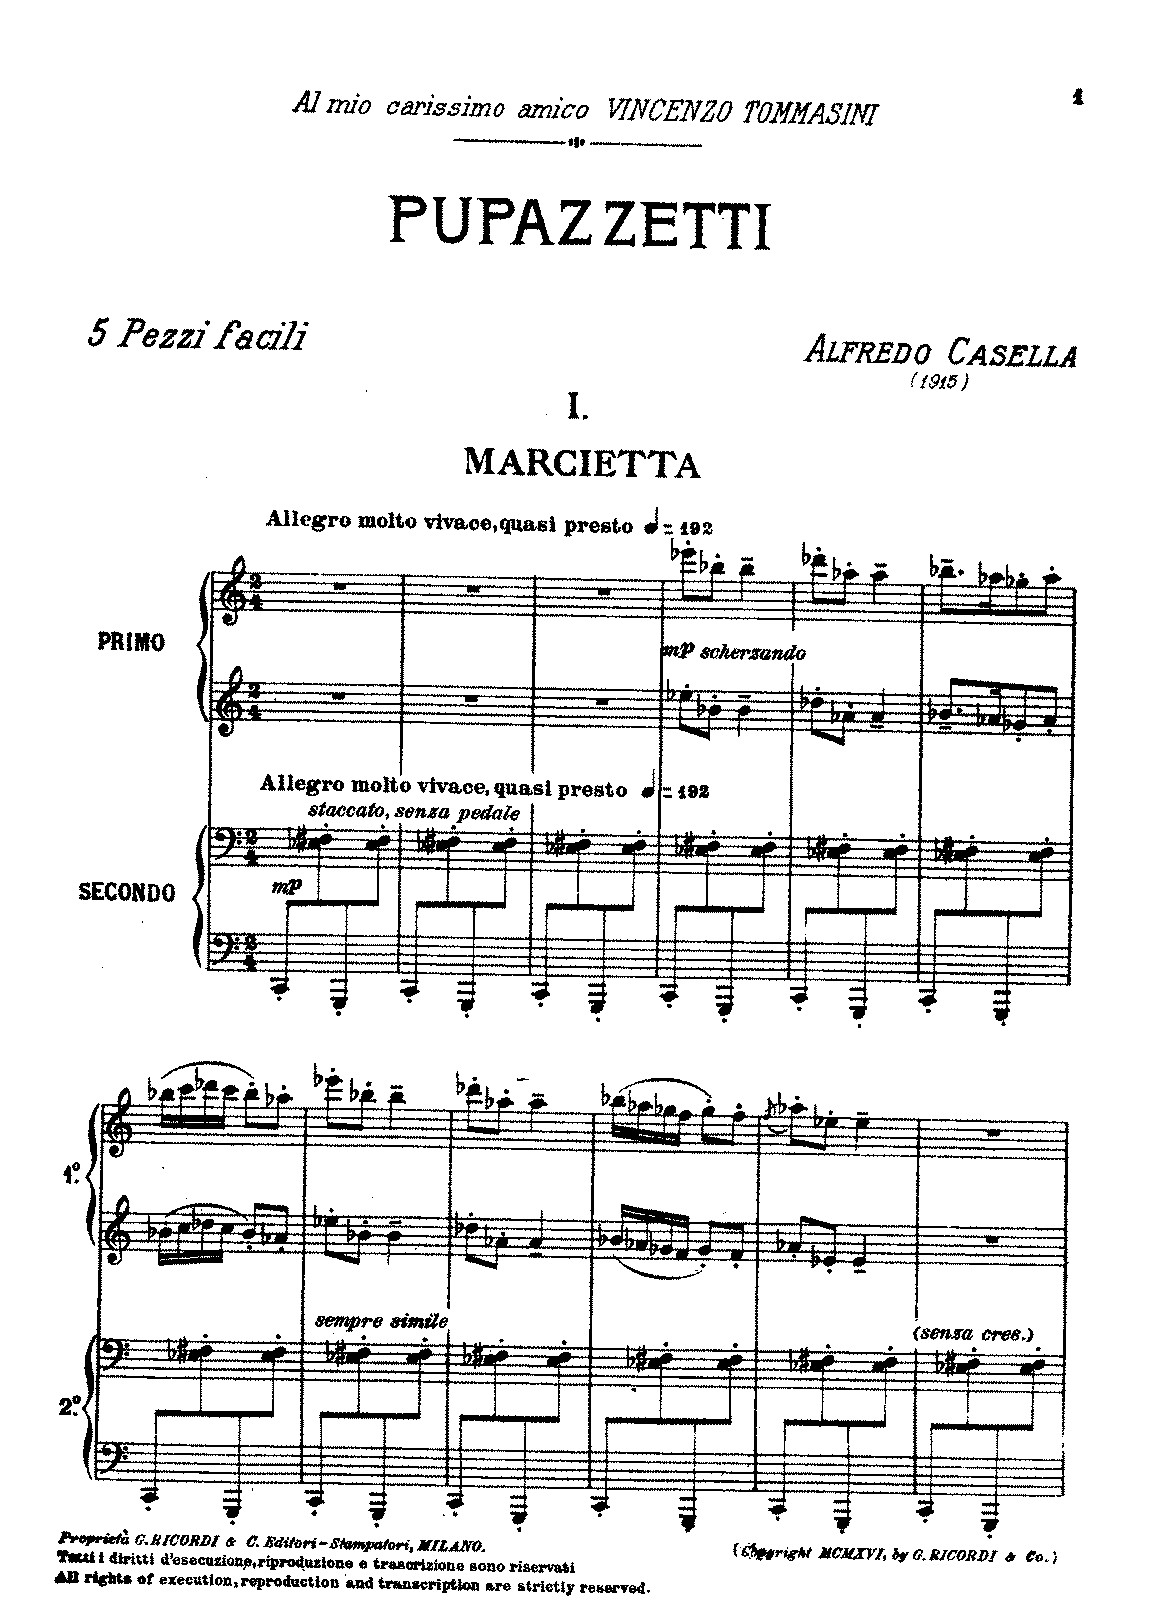 Casella (1915) op27 Five easy pieces — 'Pupazzetti' (duet).pdf